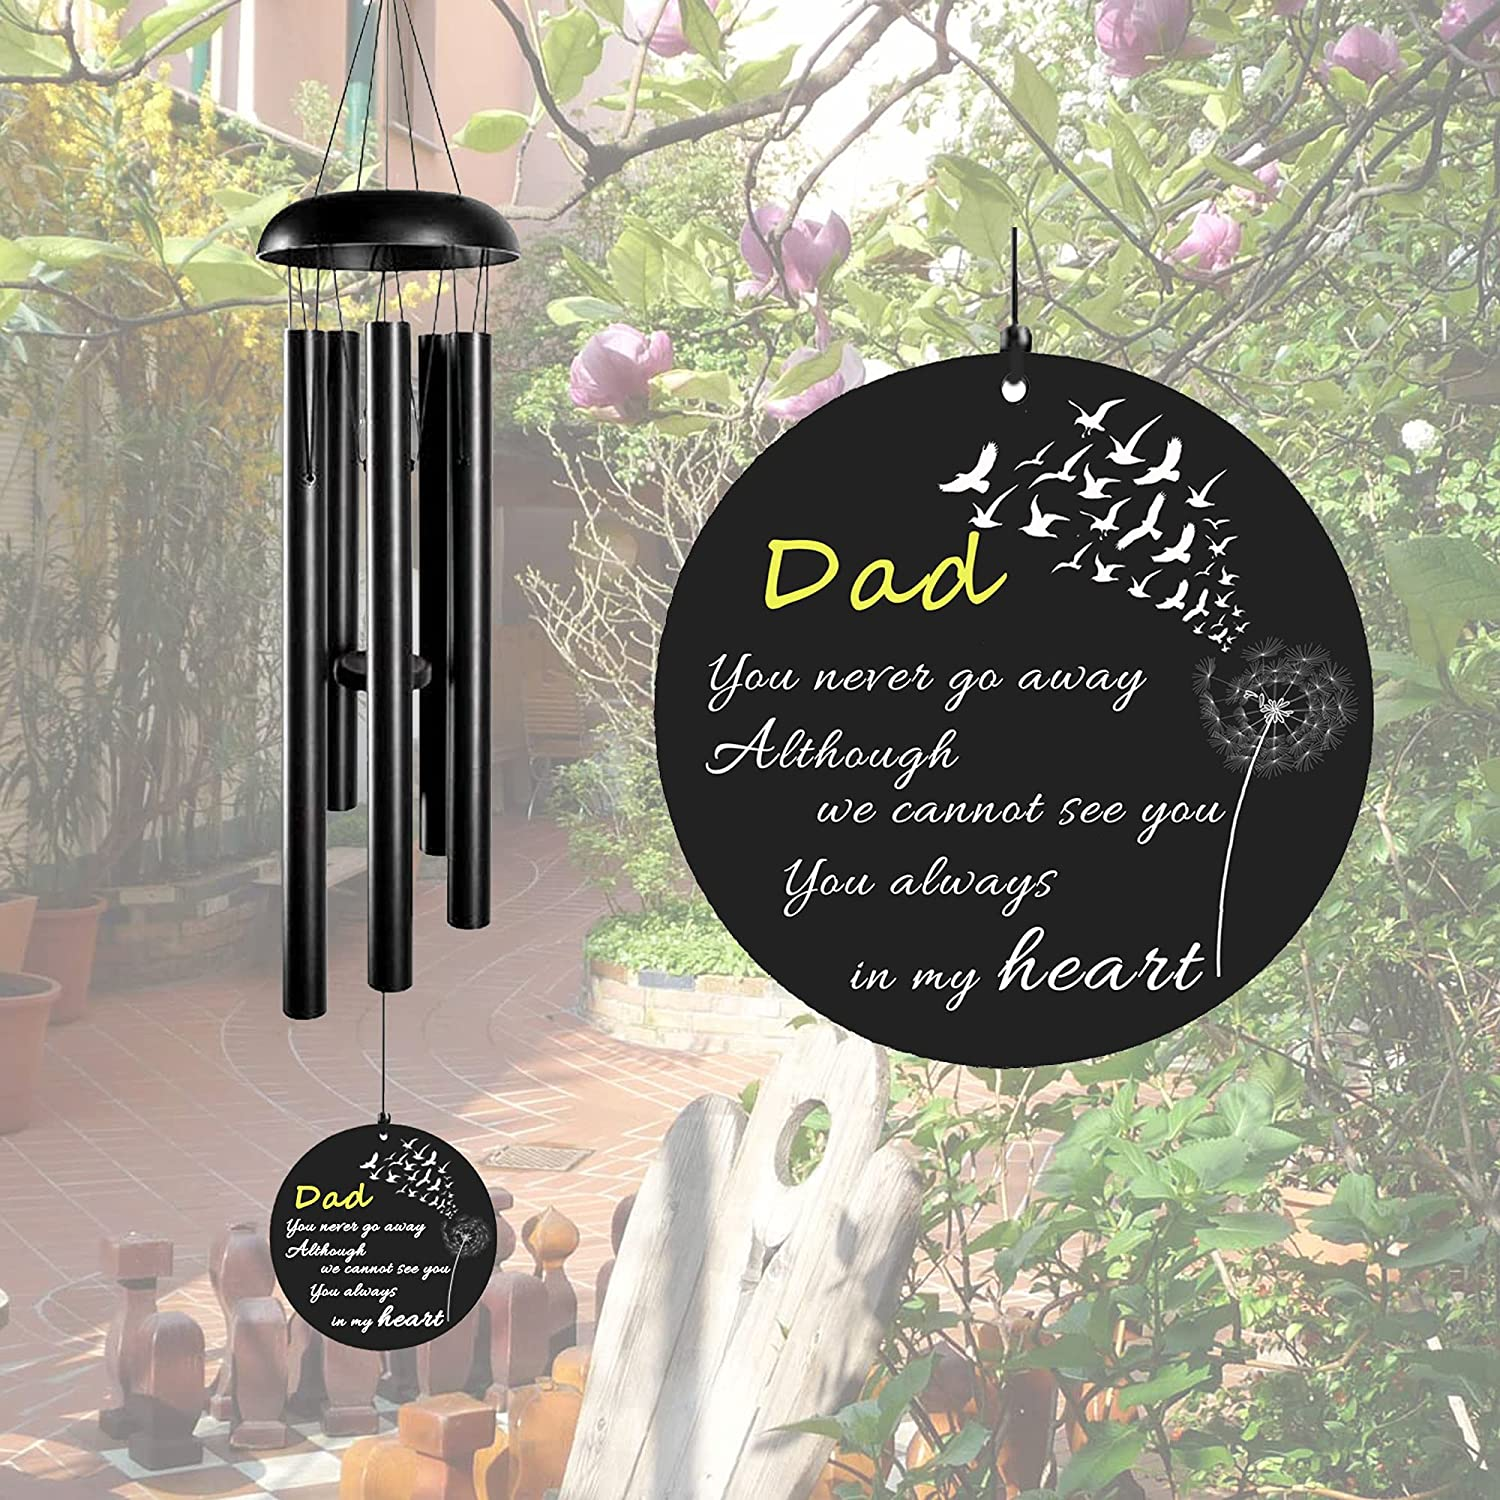 ARARTKEL Memorial Wind Chimes for Columbus Mall Gift Special Campaign Sympathy of Loss Father